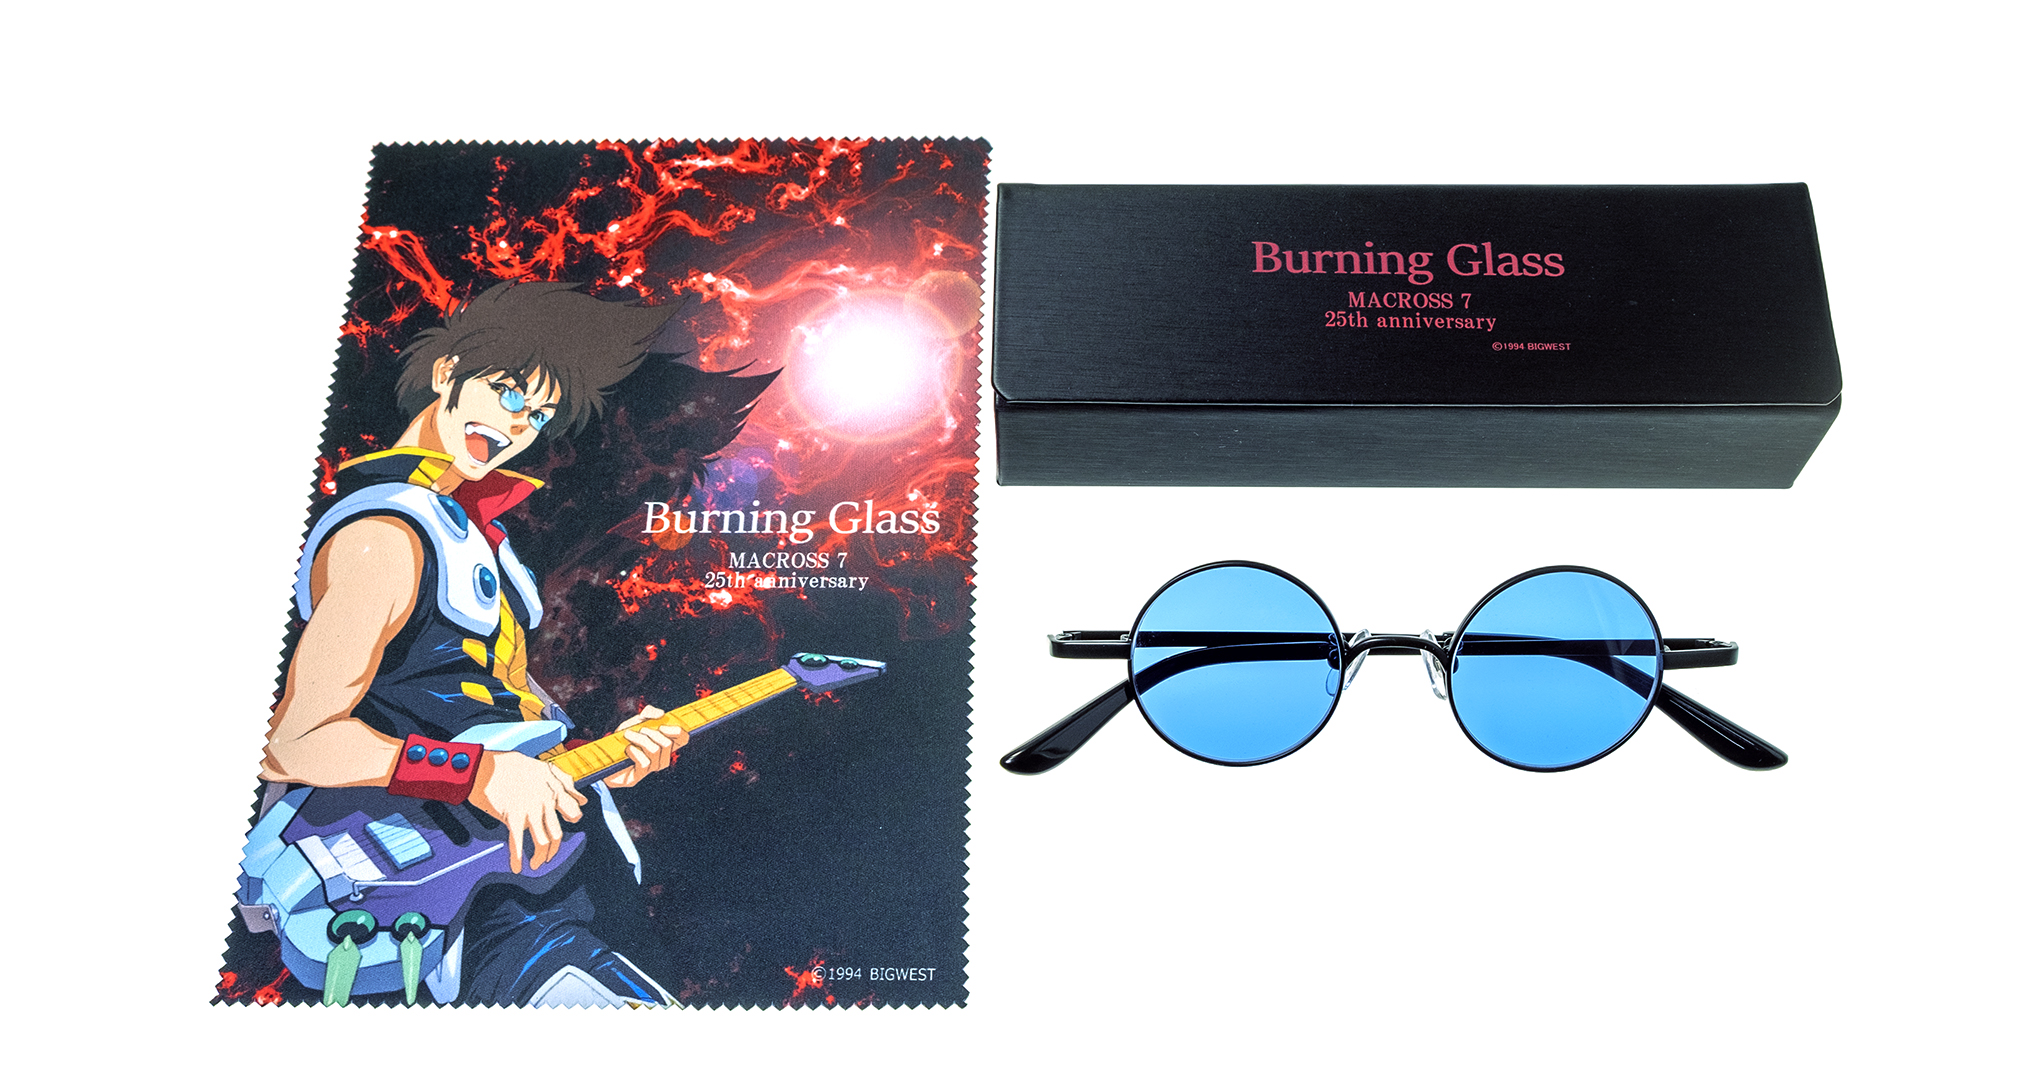 Burning Glass<br>MACROSS 7 25th anniversary